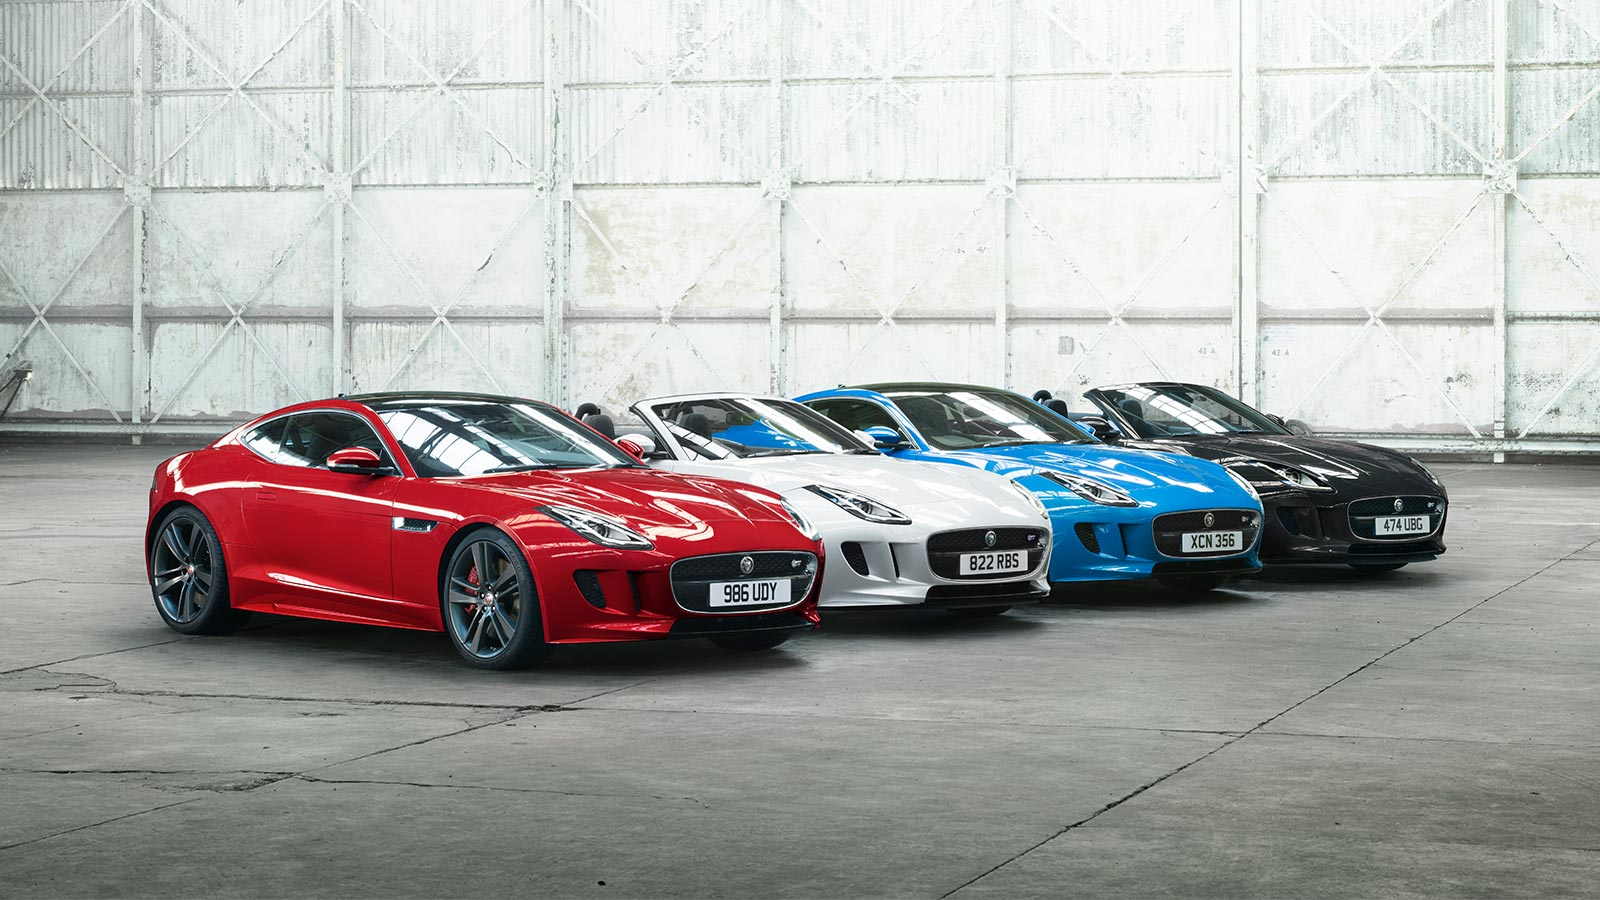 A selection of F-TYPE British Design Edition cars in different colours inside an aircraft hangar.